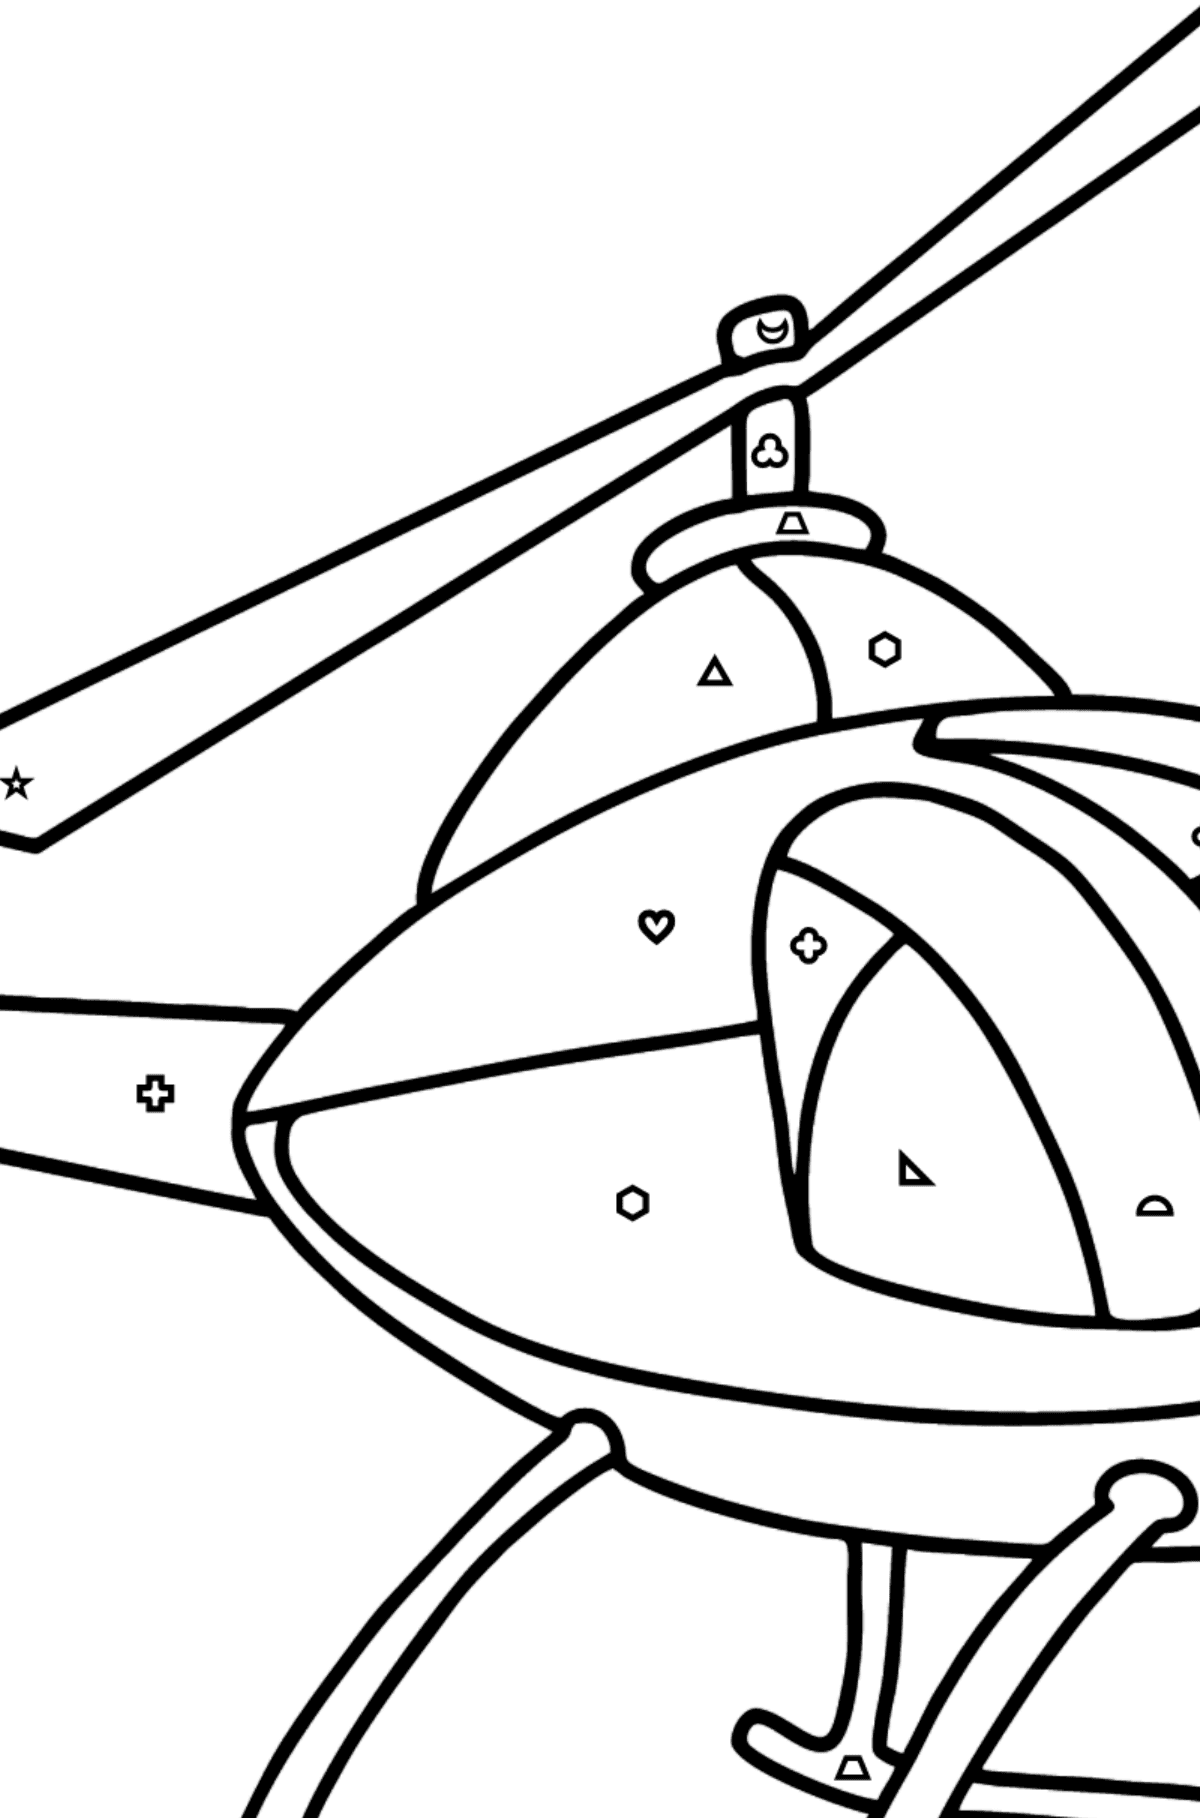 Helicopter coloring page for kids - Coloring by Geometric Shapes for Kids